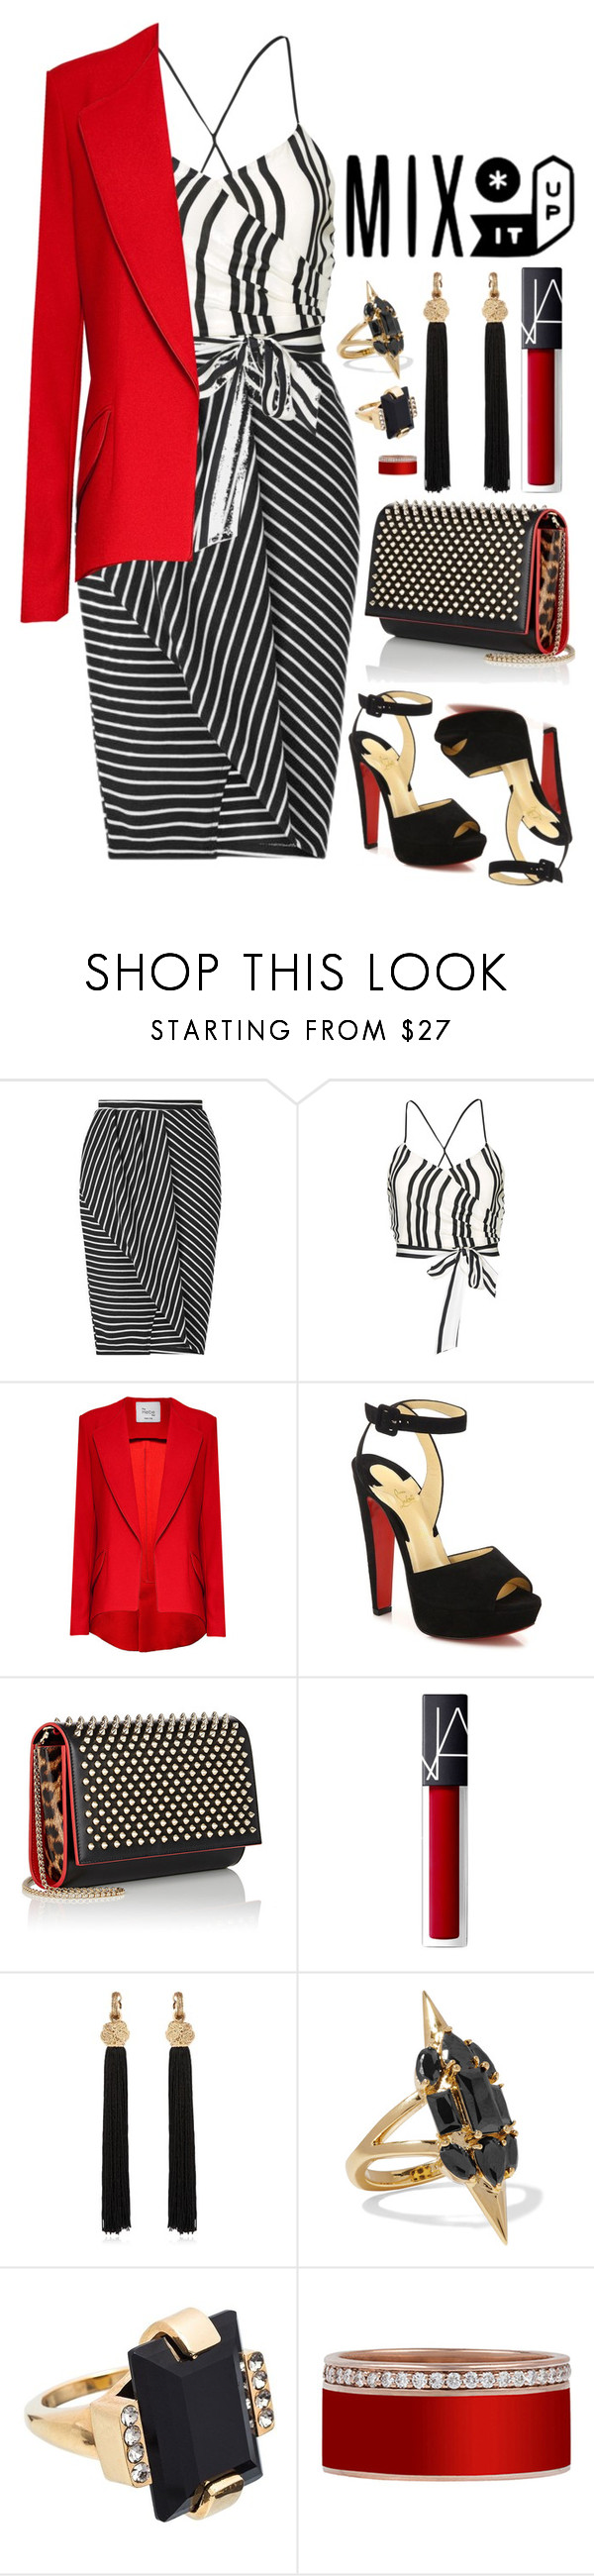 """Untitled #359"" by kitkat2243 ❤ liked on Polyvore featuring Miss Selfridge, Alice + Olivia, Hebe Studio, Christian Louboutin, Yves Saint Laurent, Noir Jewelry and Marni"